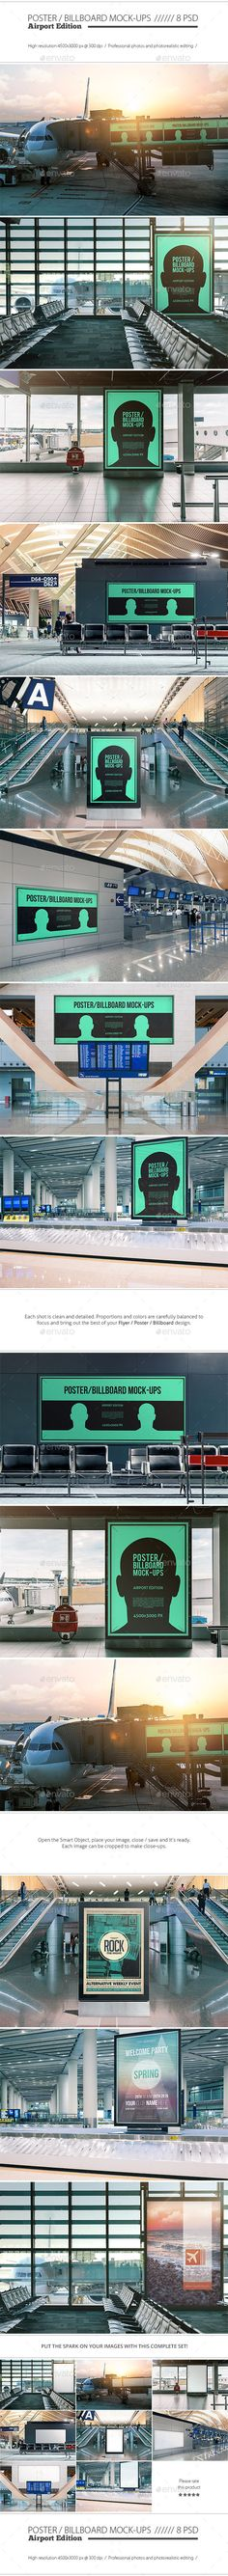 Poster / Billboard Mock-ups - Airport Edition #design Buy Now: http://graphicriver.net/item/poster-billboard-mockups-airport-edition/12875743?ref=ksioks